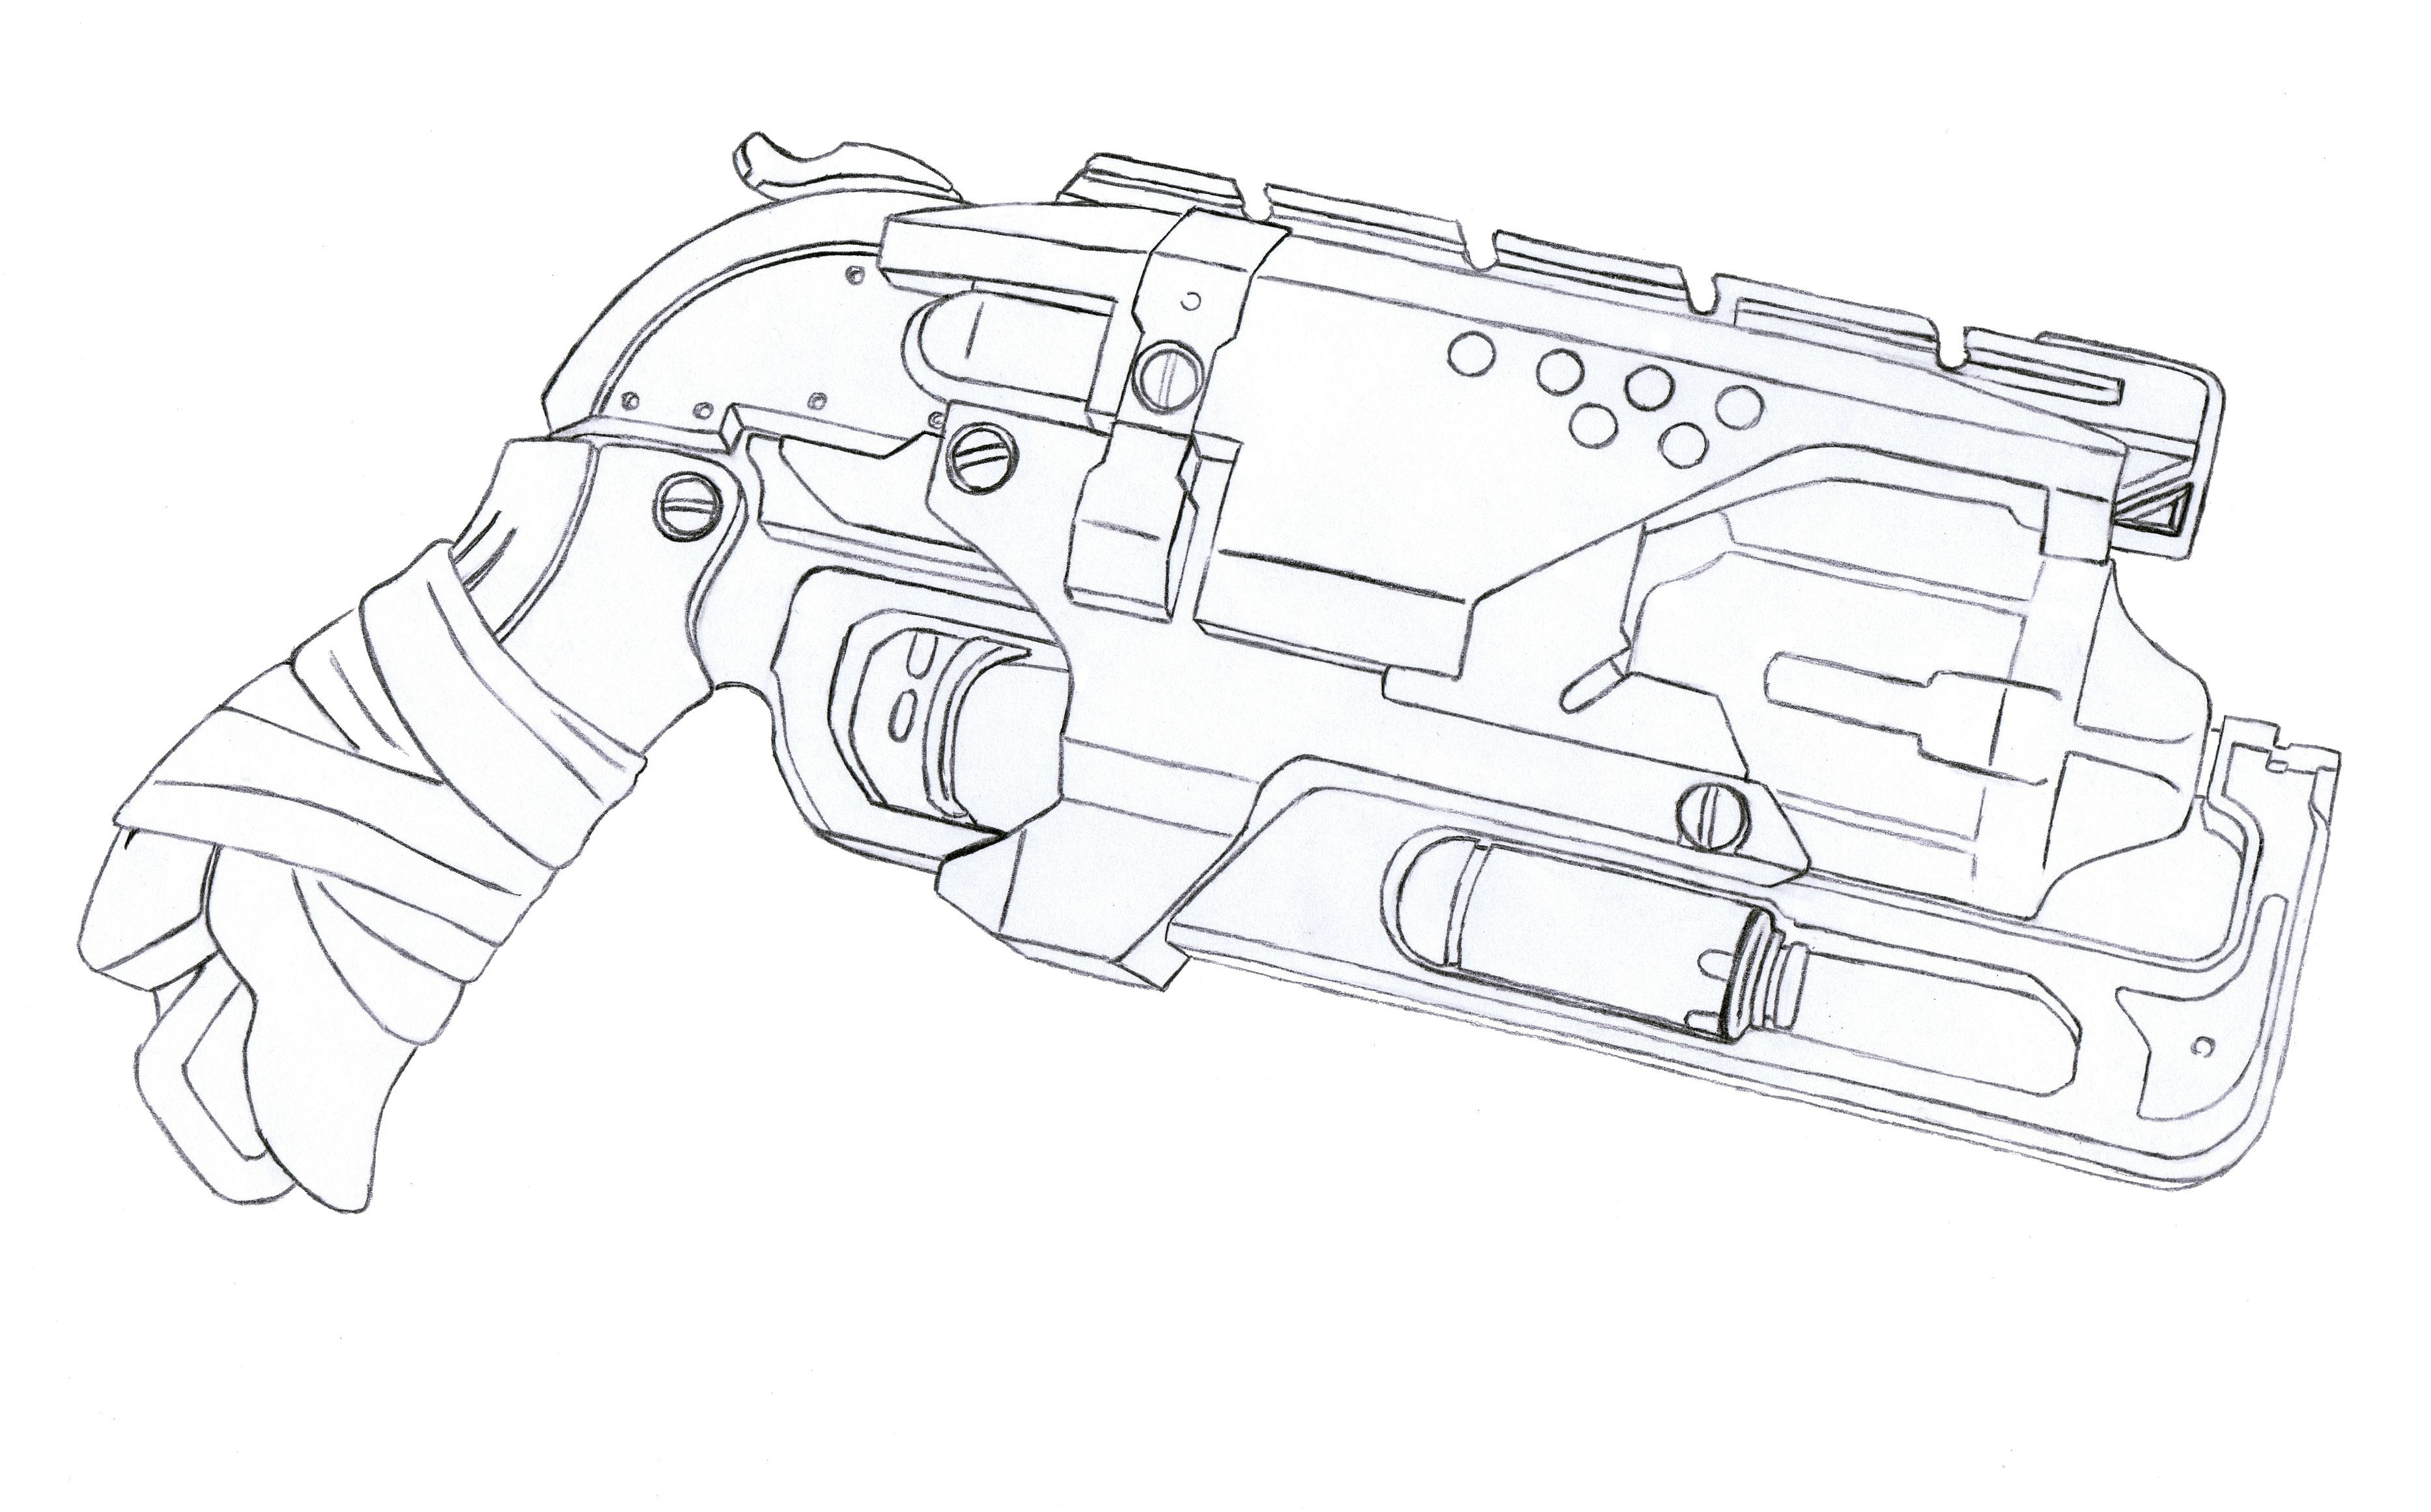 Nerf Ausmalbilder  Nerf Gun Coloring Pages Collection